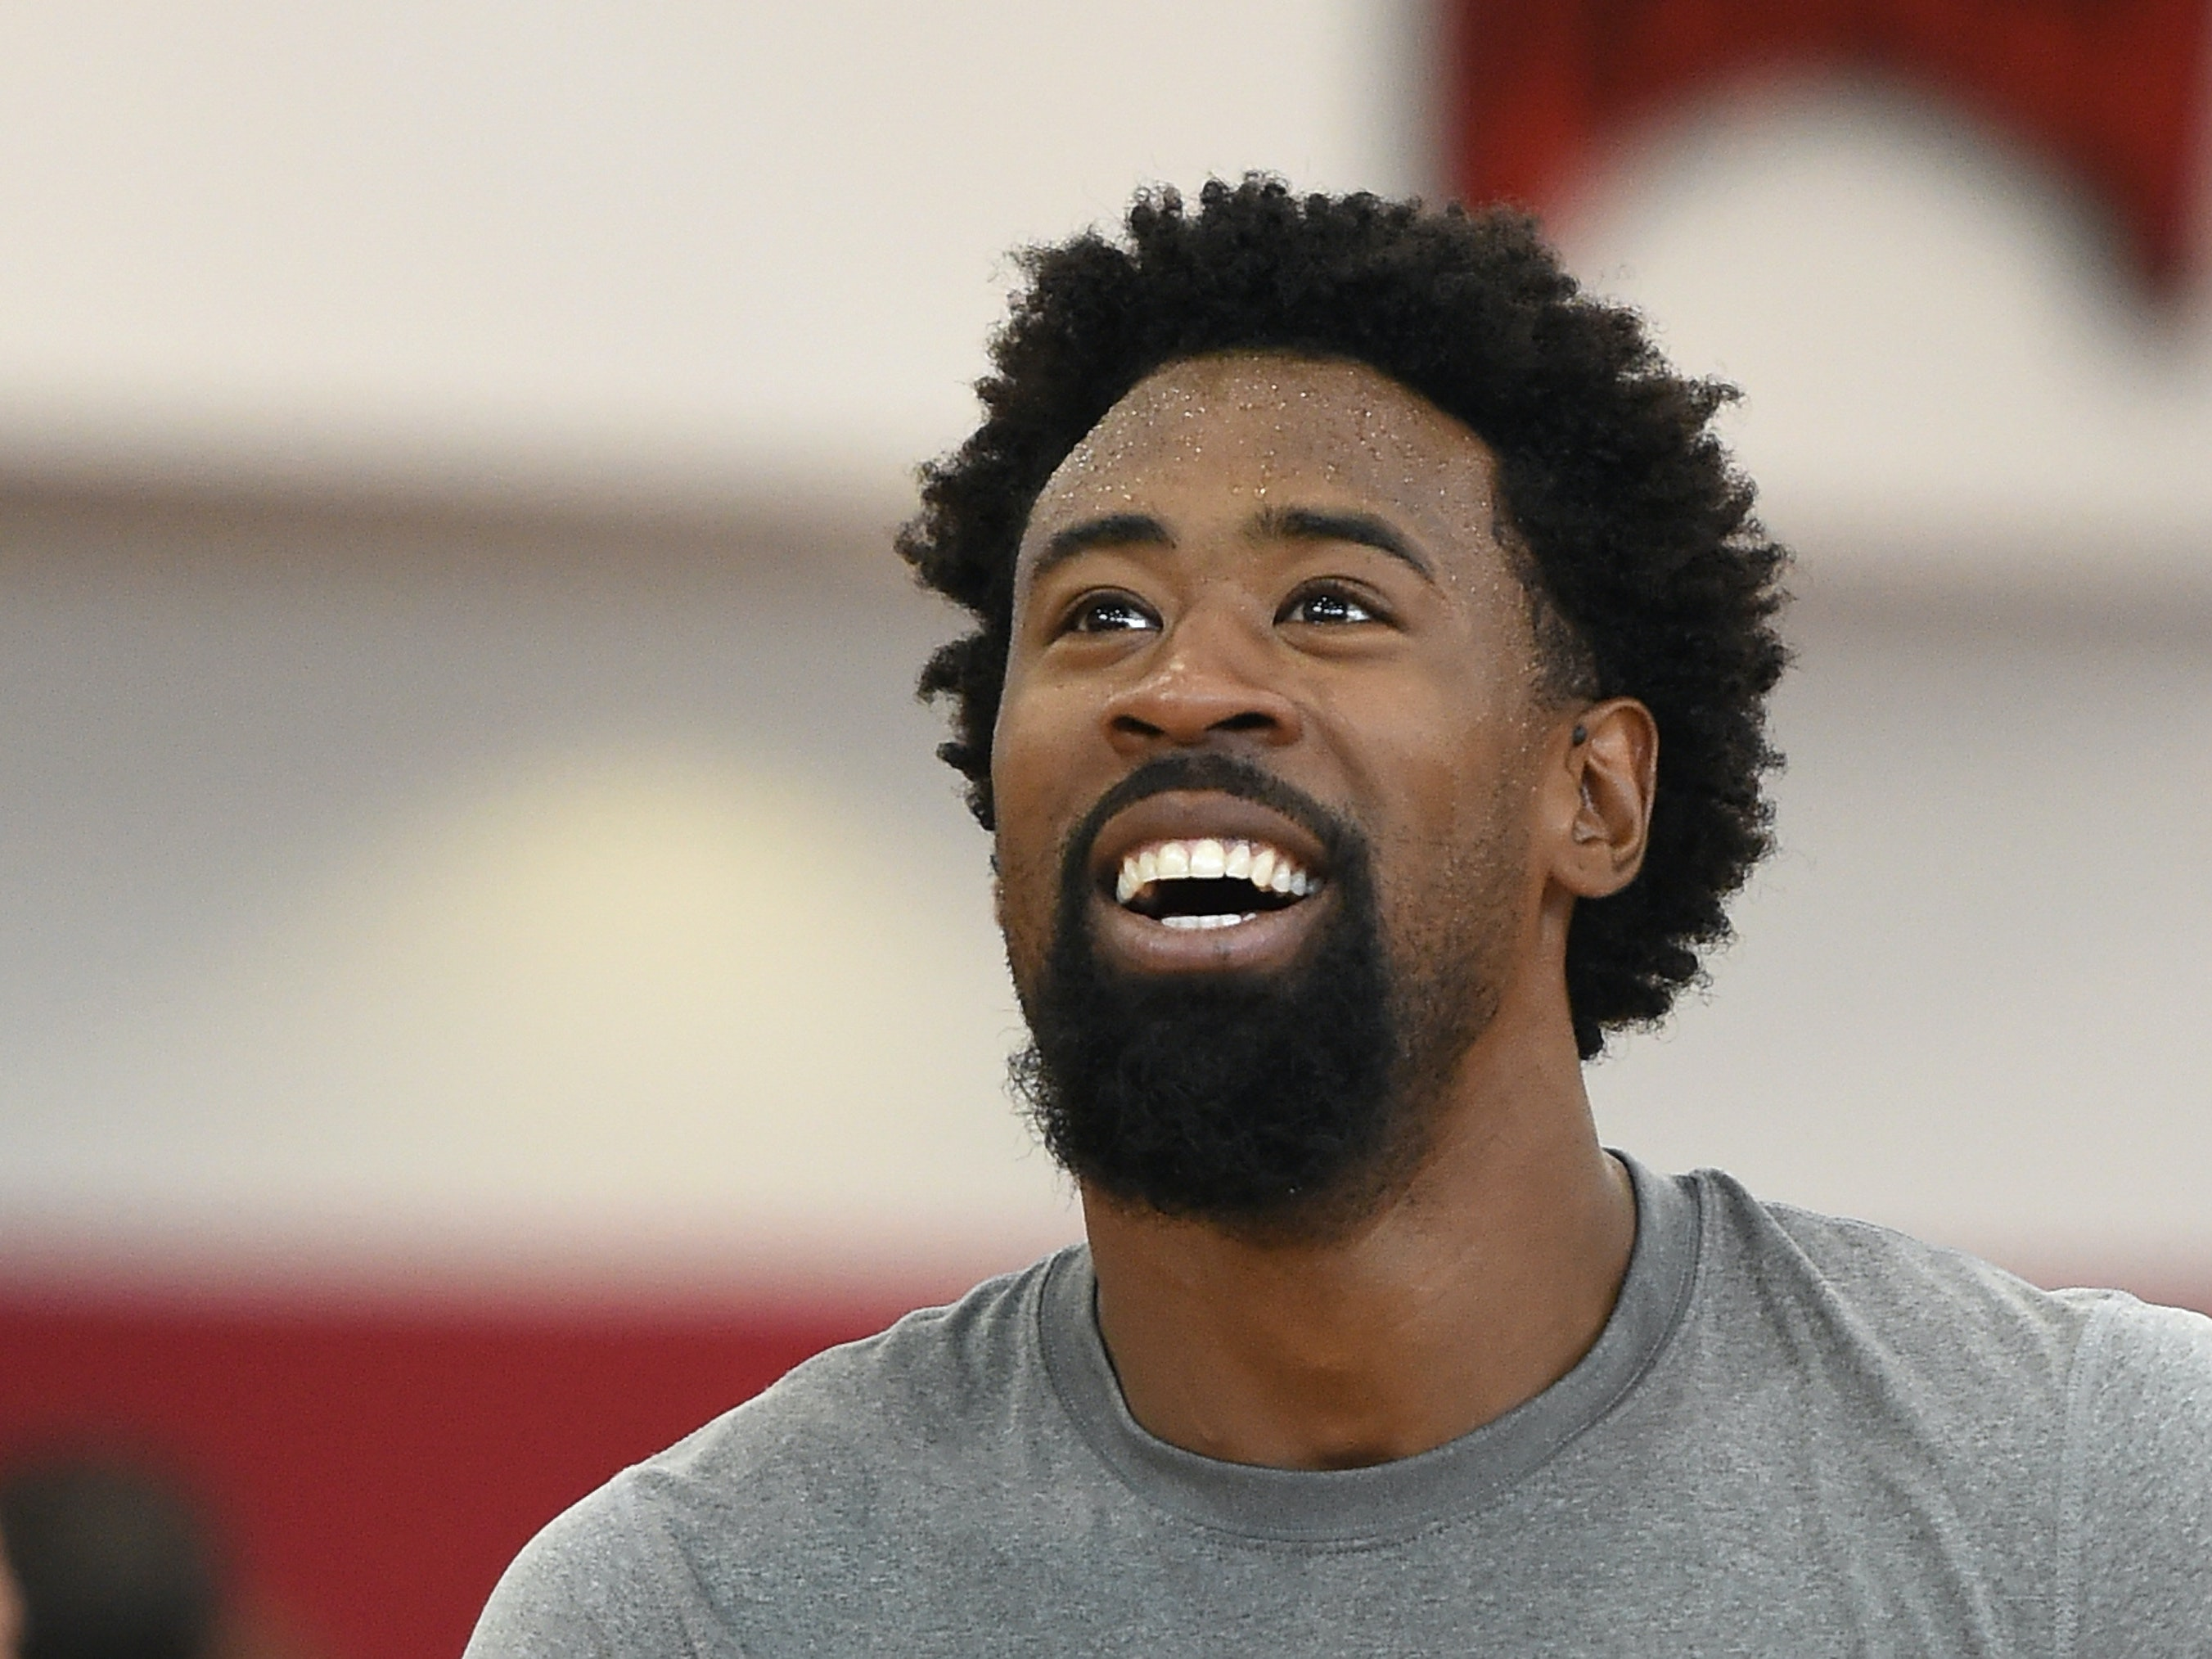 Forget LeBron James; DeAndre Jordan Should Be the Comedic Center of 'Space Jam 2'